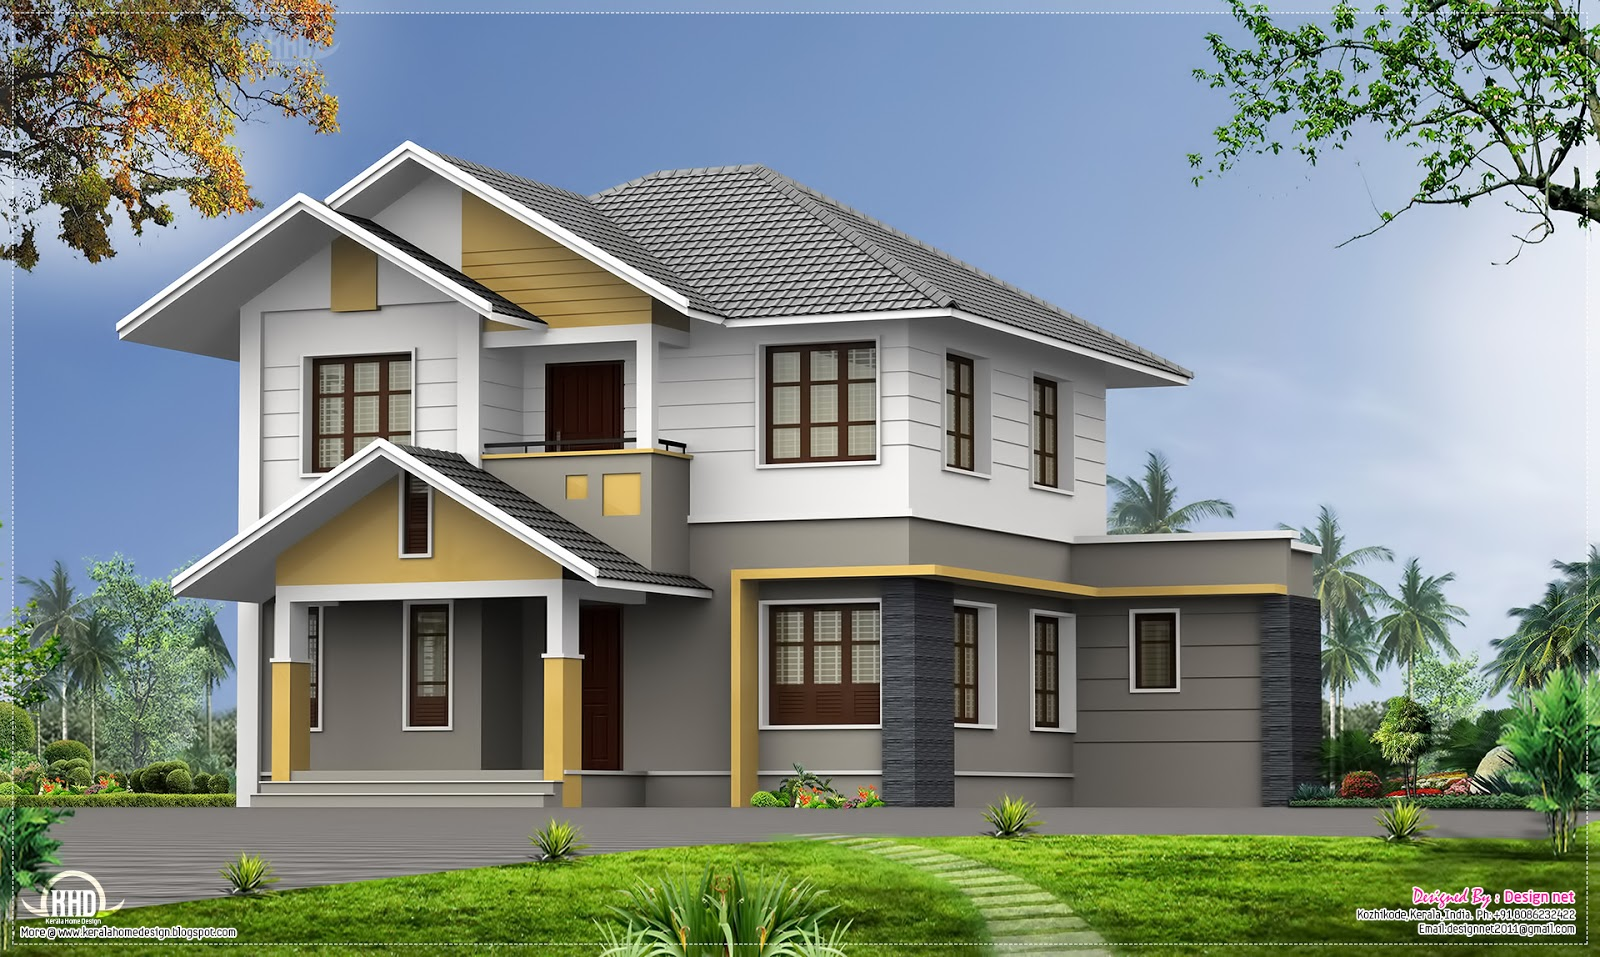 sq ft house sq ft house plans exterior sq ft house floor plans sq ft house plan sq ft house